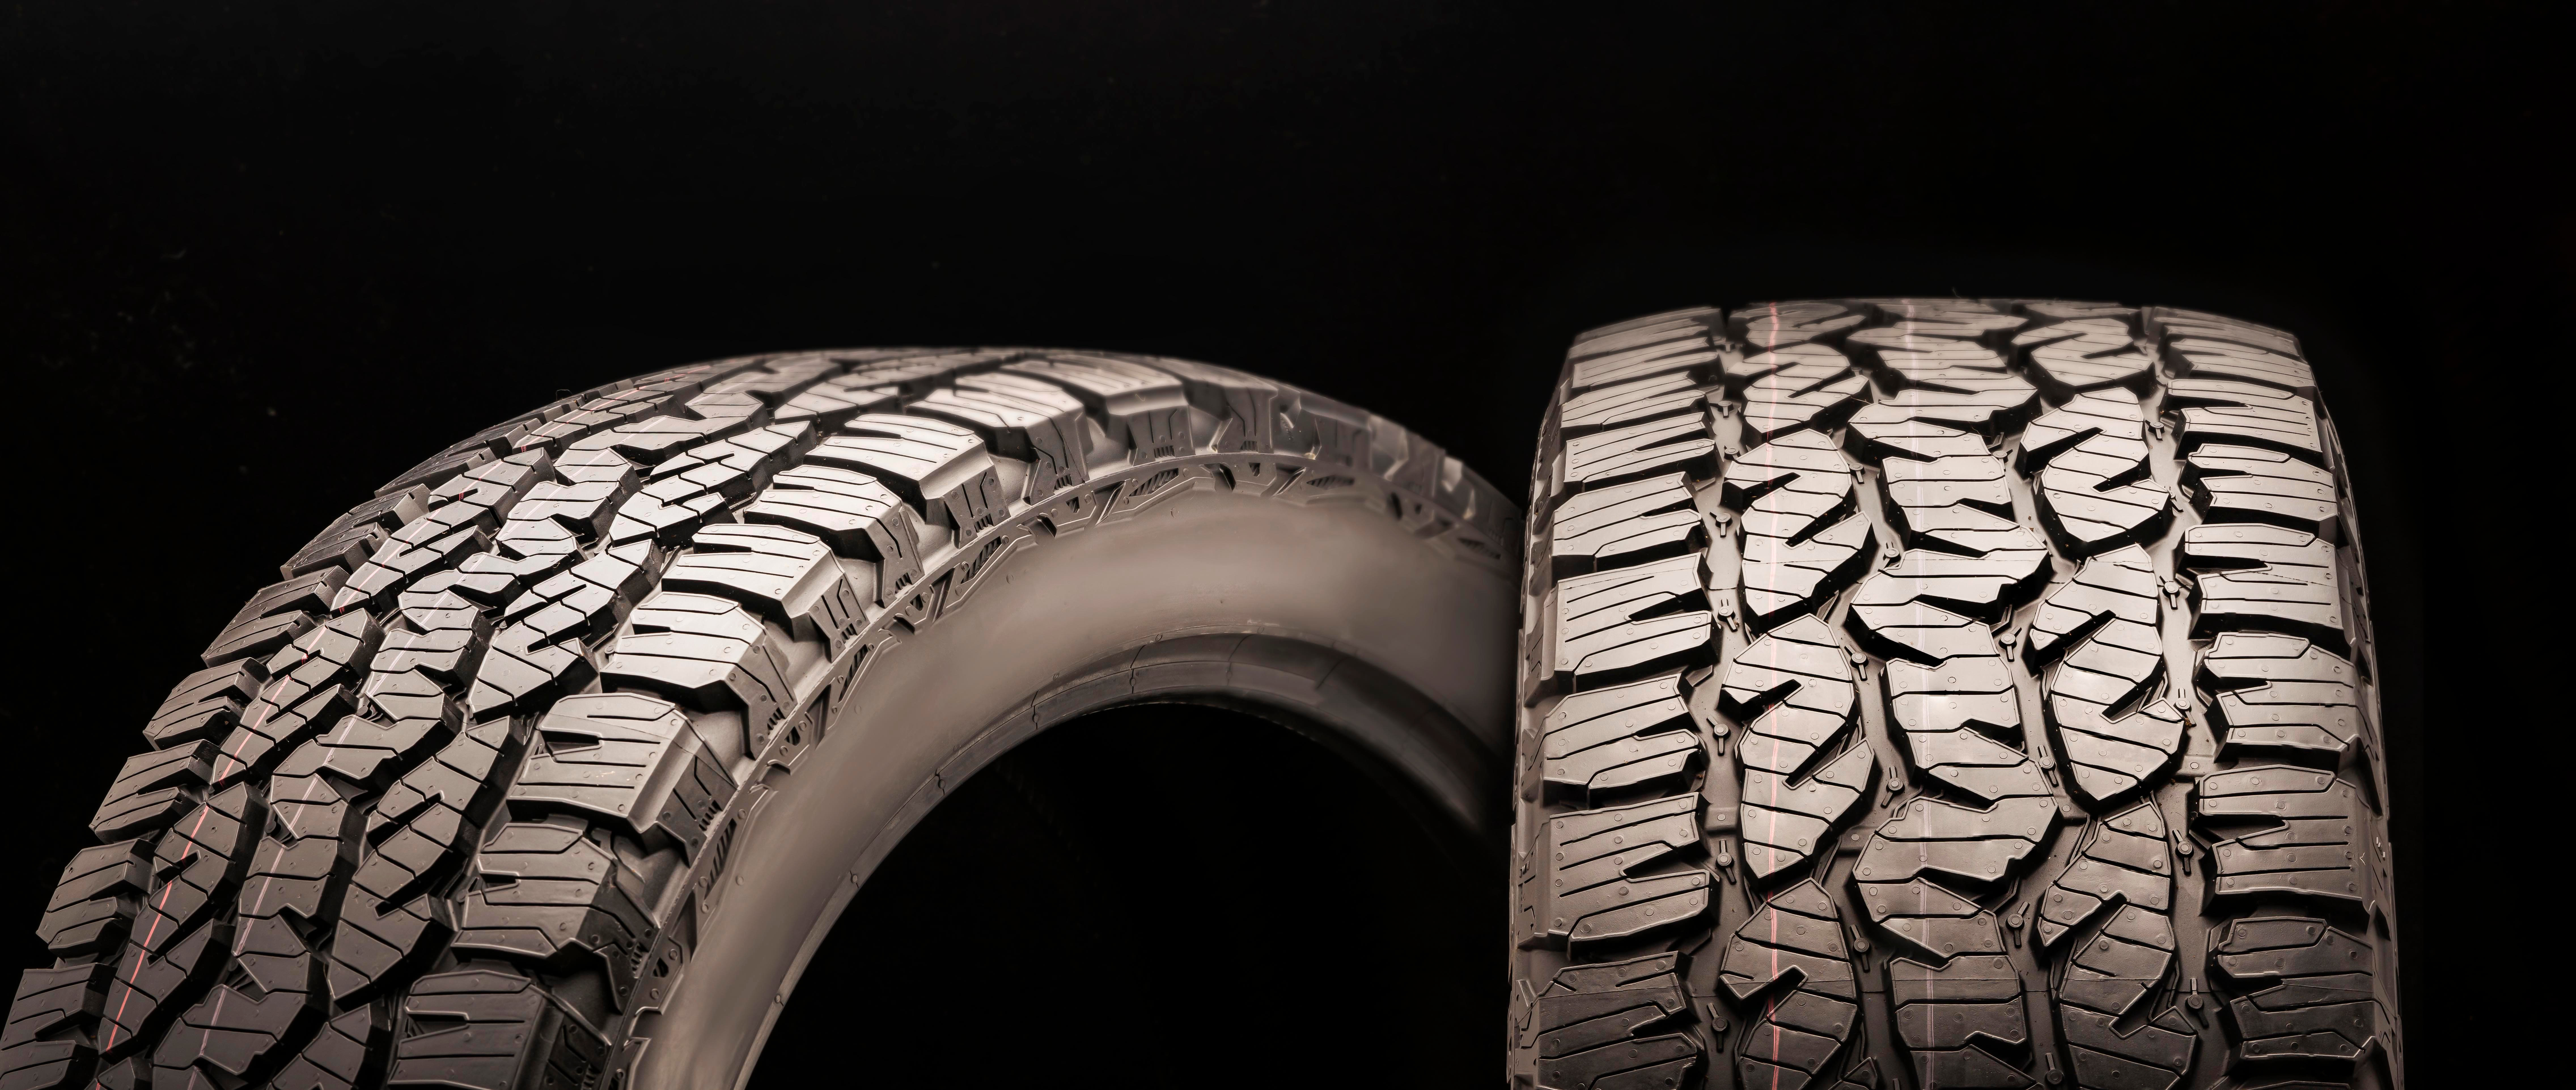 Tire aspect ratio showing tread and sidewall